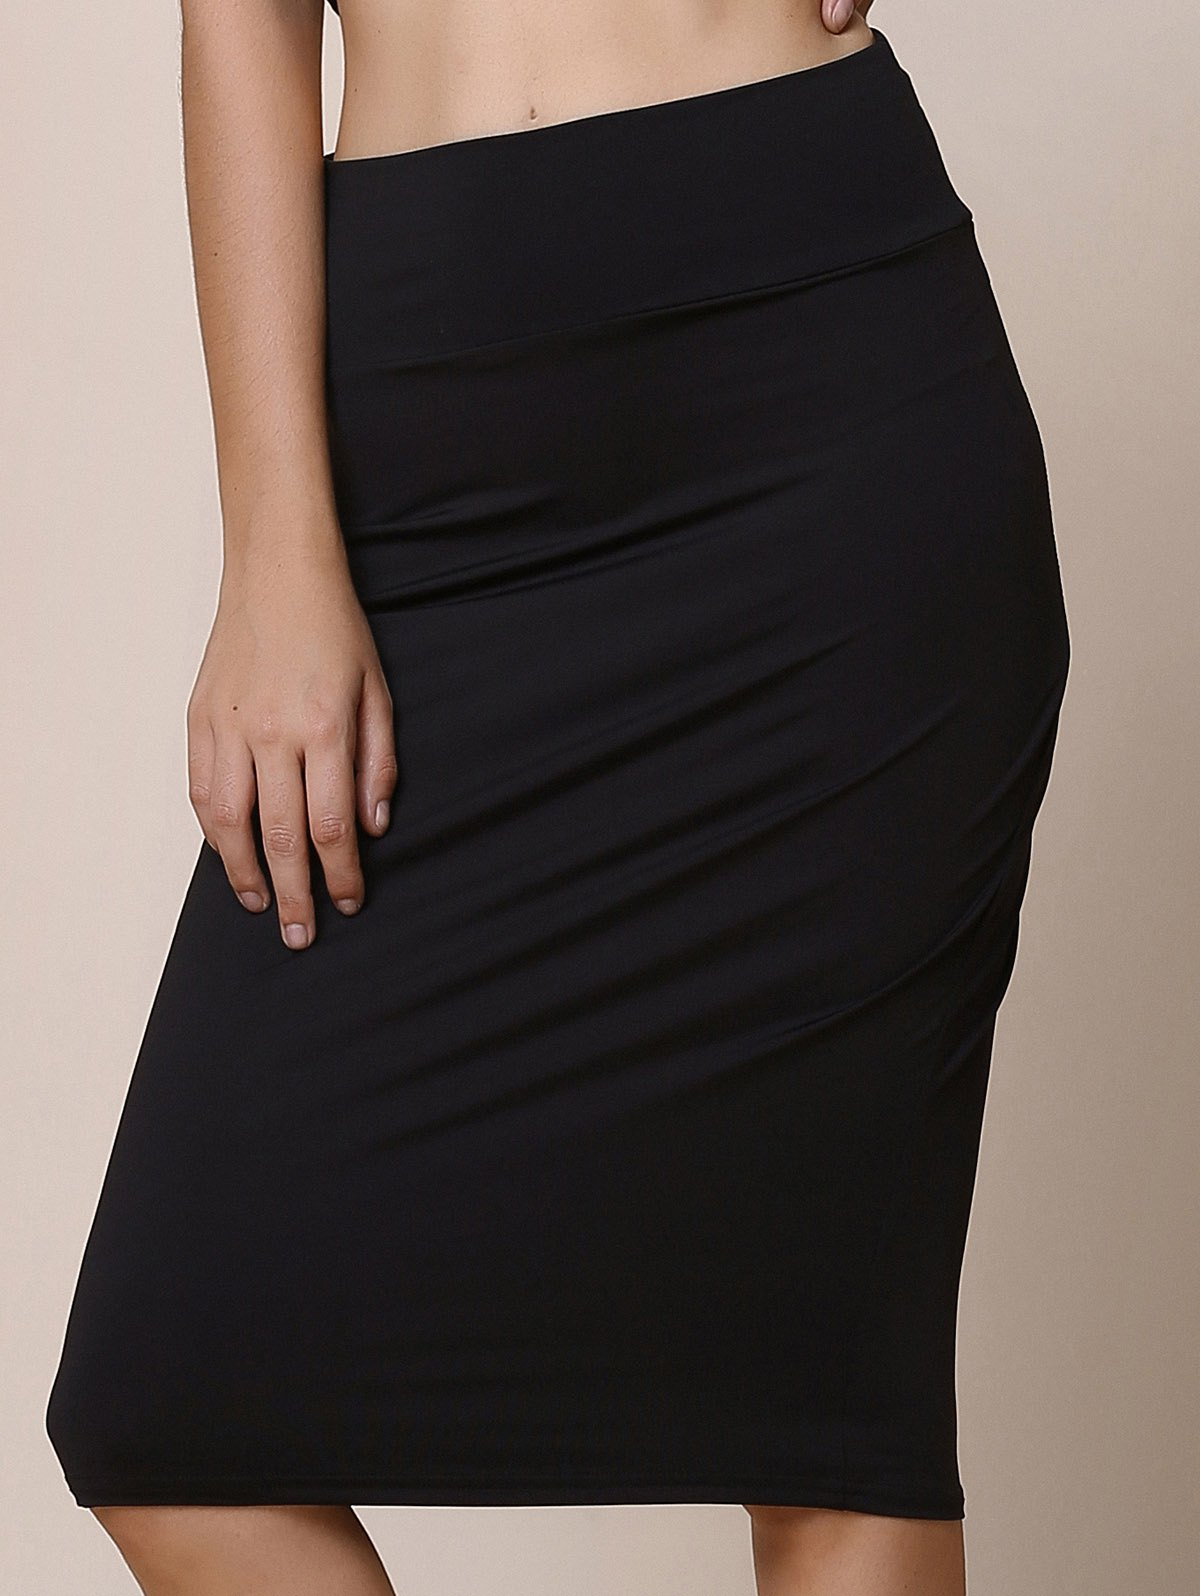 Work Style Solid Color High-Waisted Women's Midi Skirt - BLACK S